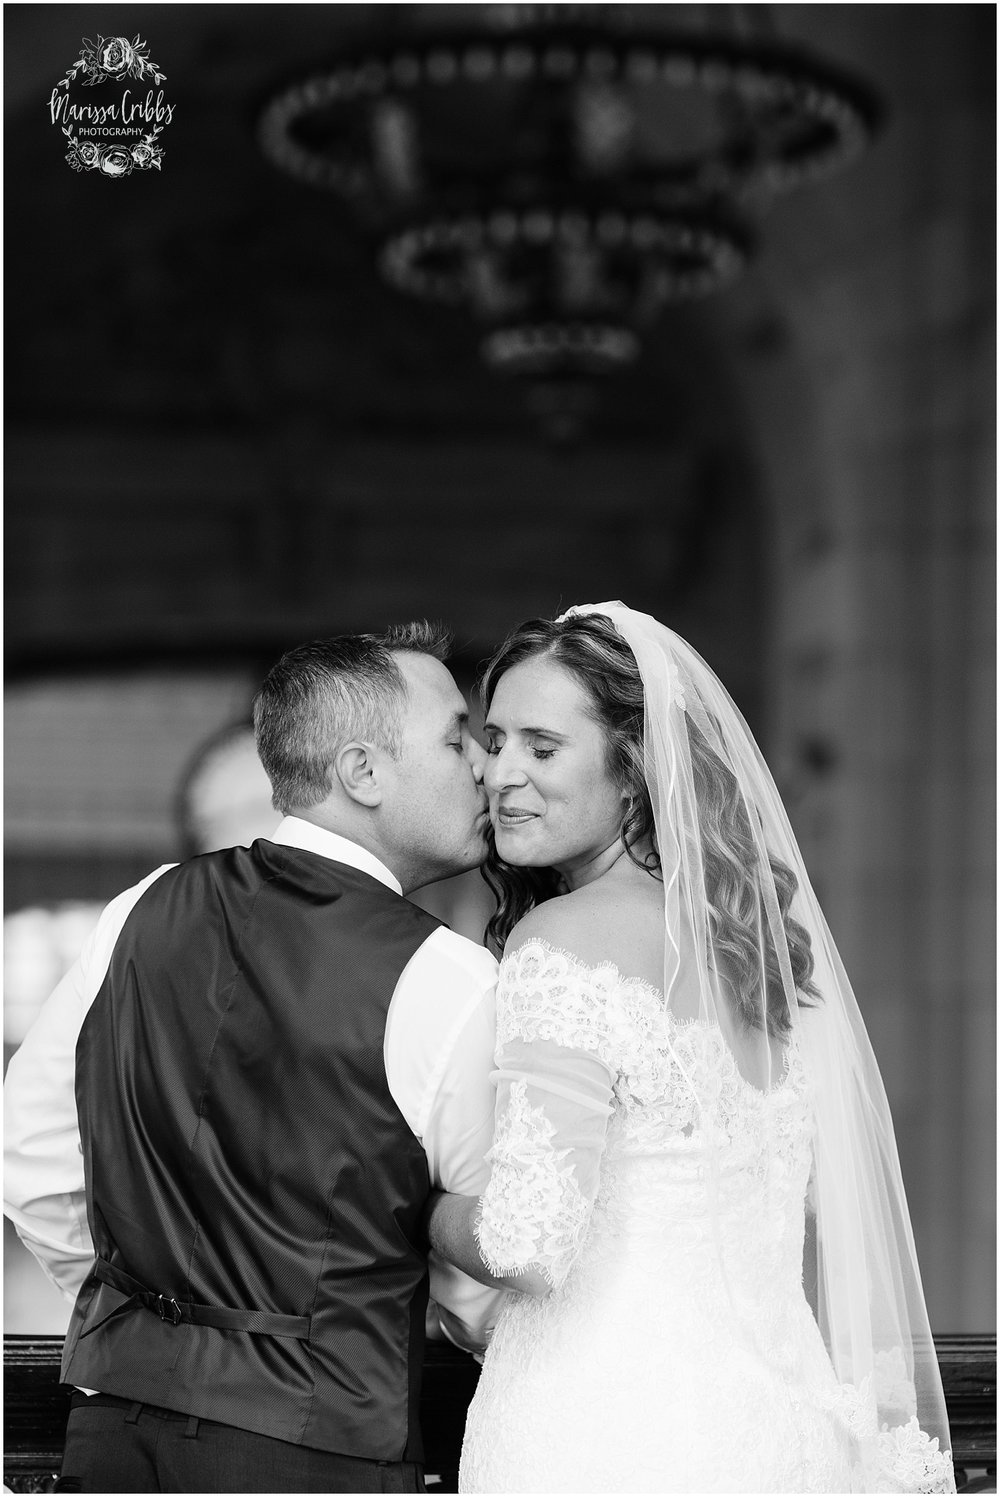 Madrid Theatre Wedding | Union Station | Liberty Memorial | KC Wedding Photographer | Marissa Cribbs Photography_0519.jpg